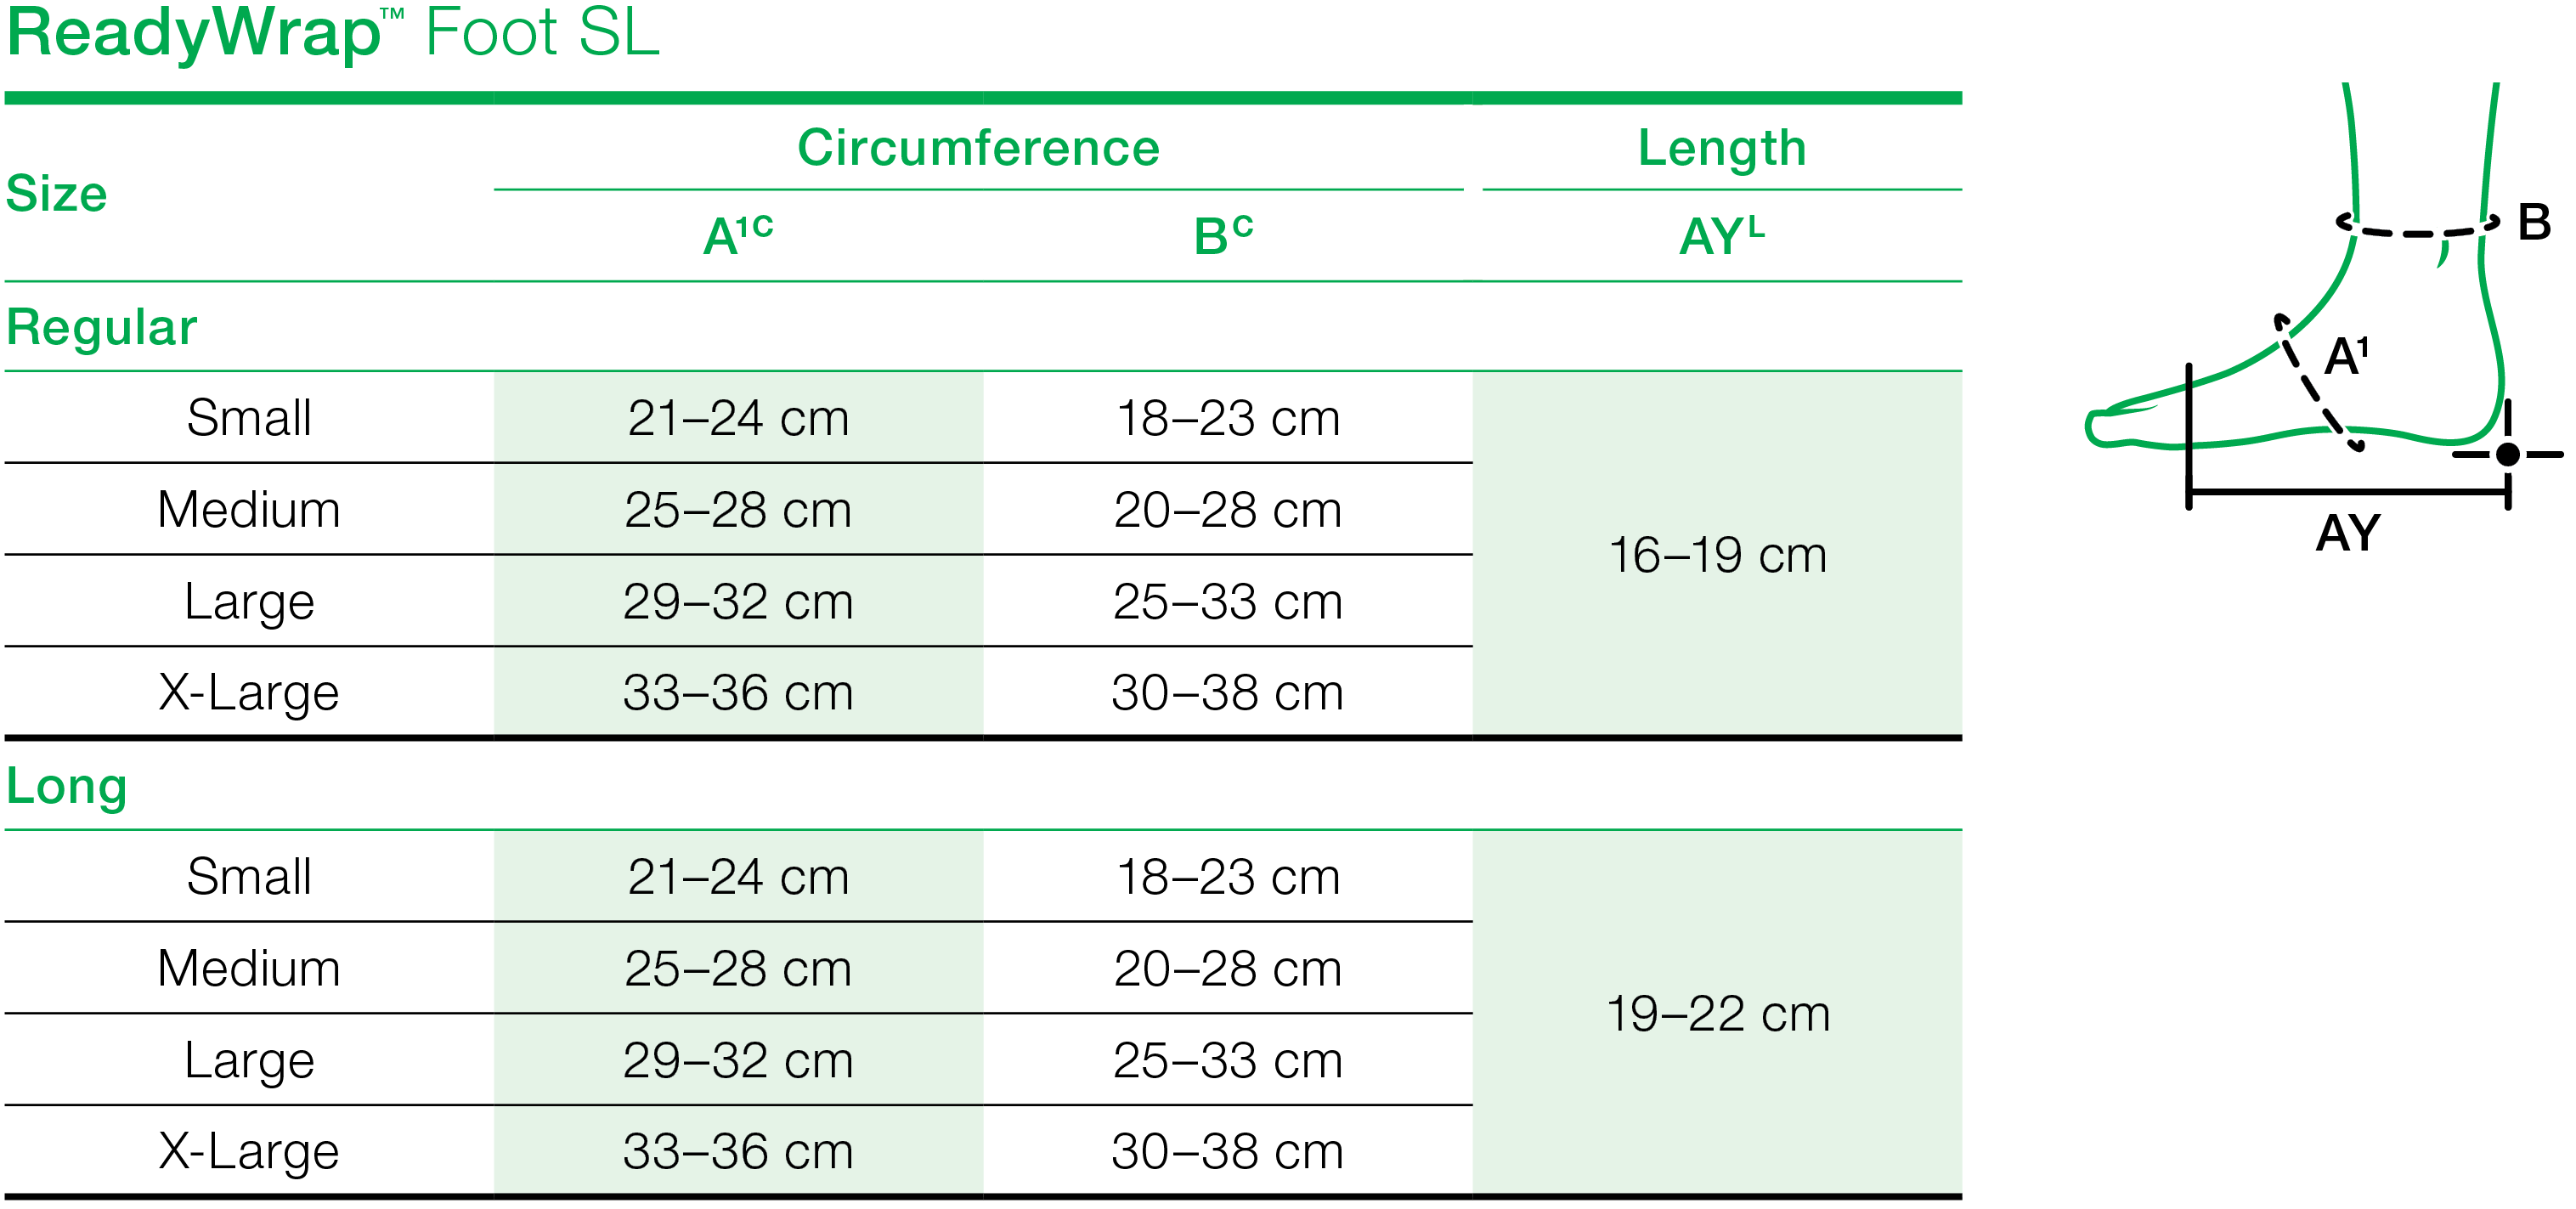 ReadyWrap Foot SL Sizing Chart